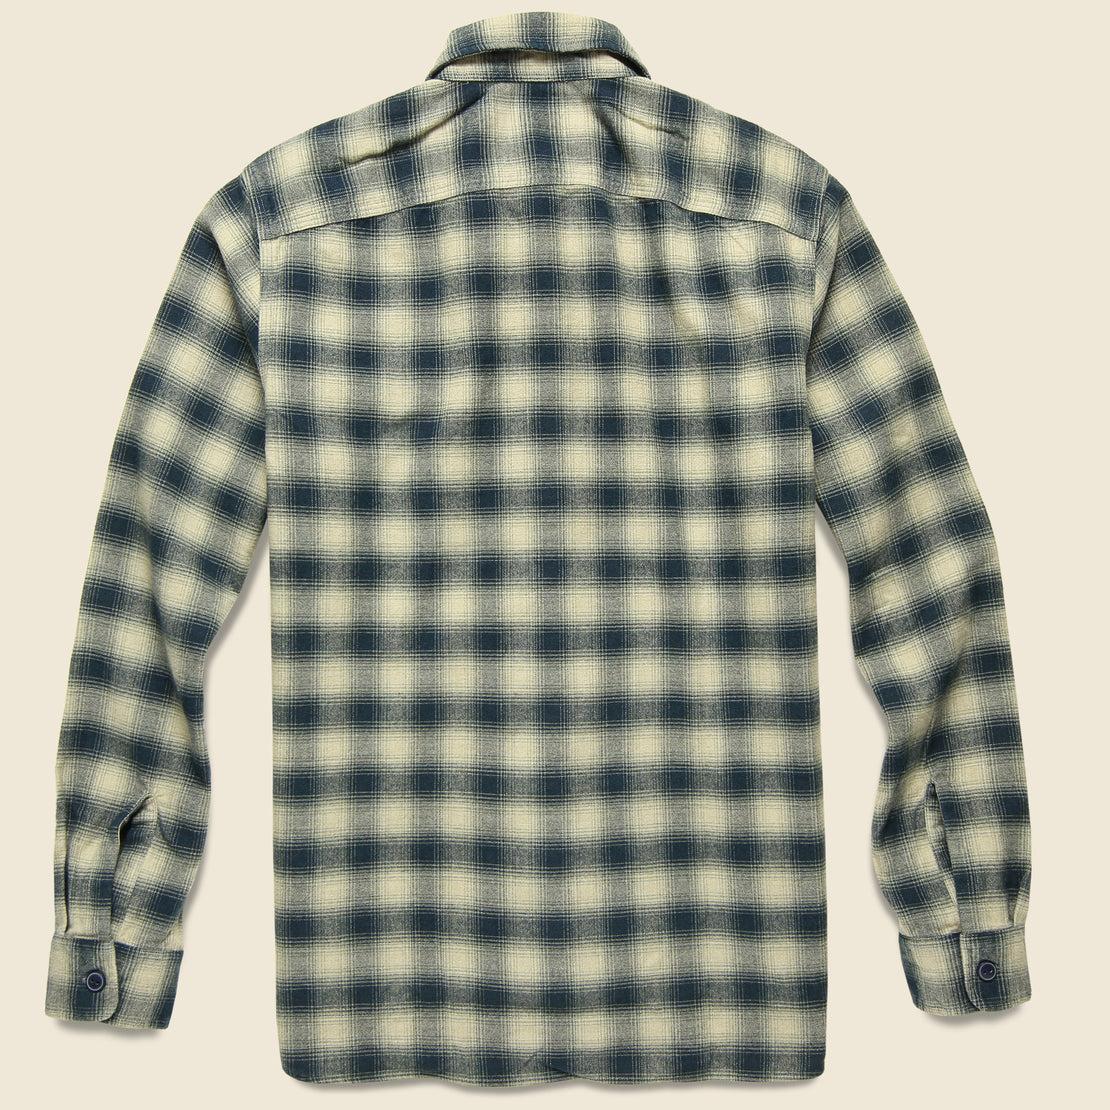 Brushed Ombre Plaid Matlock Workshirt - Cream/Grey